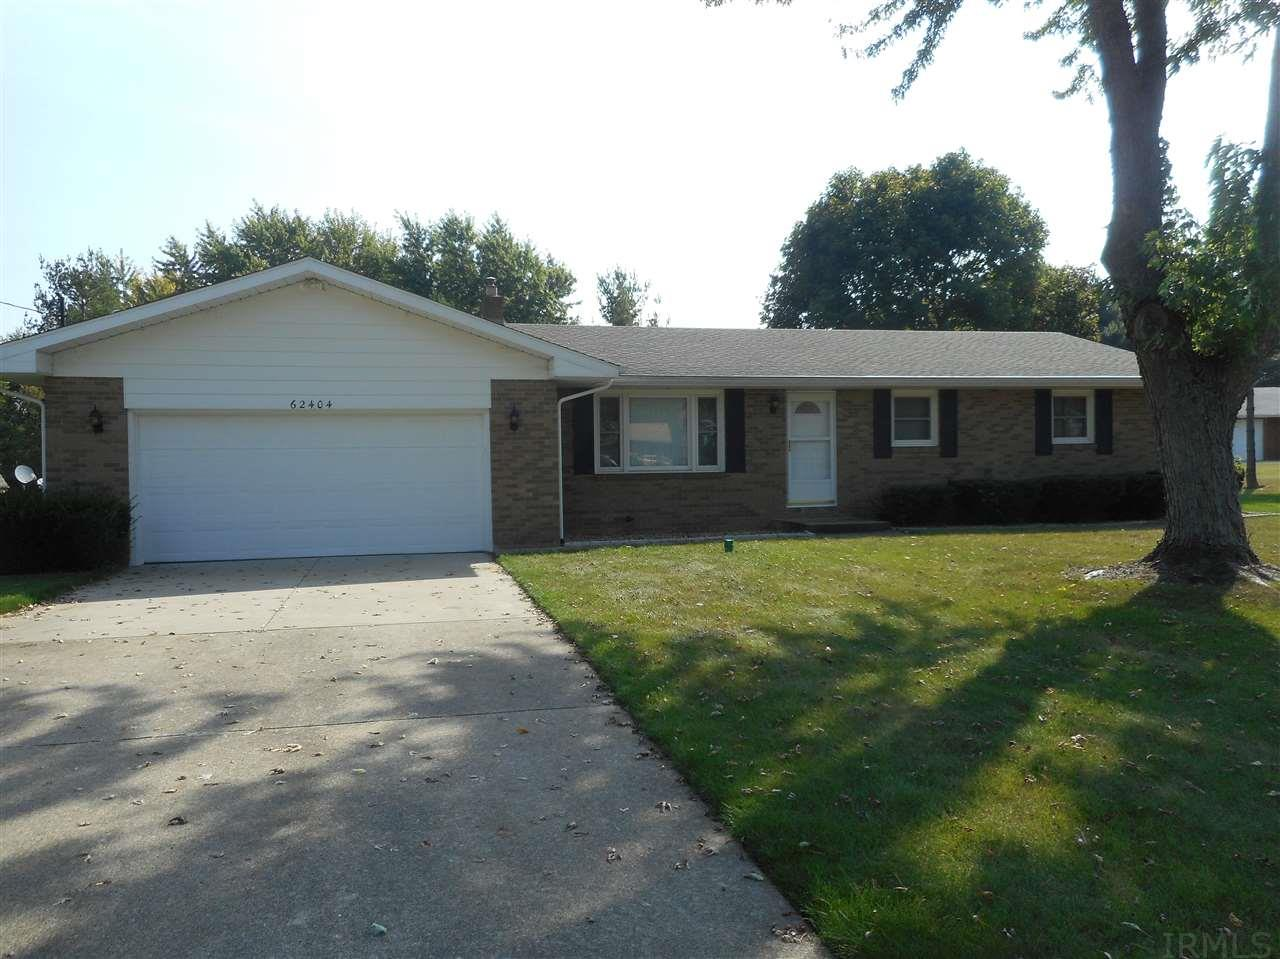 62404  Pine North Liberty, IN 46554